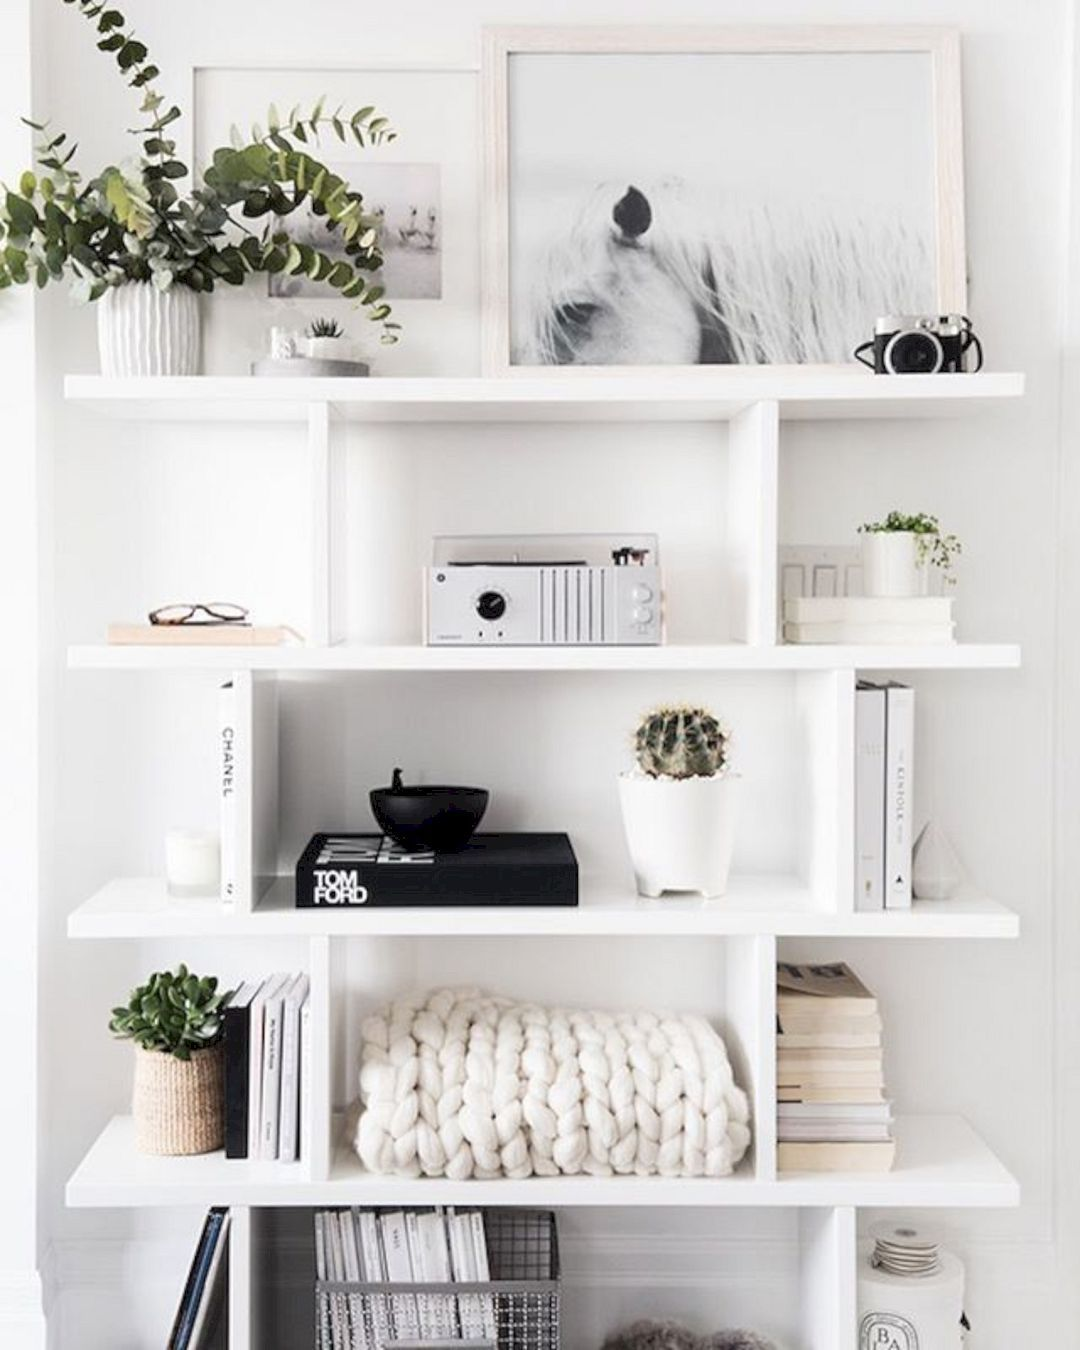 Minimal shelving white green black color scheme home inspiration